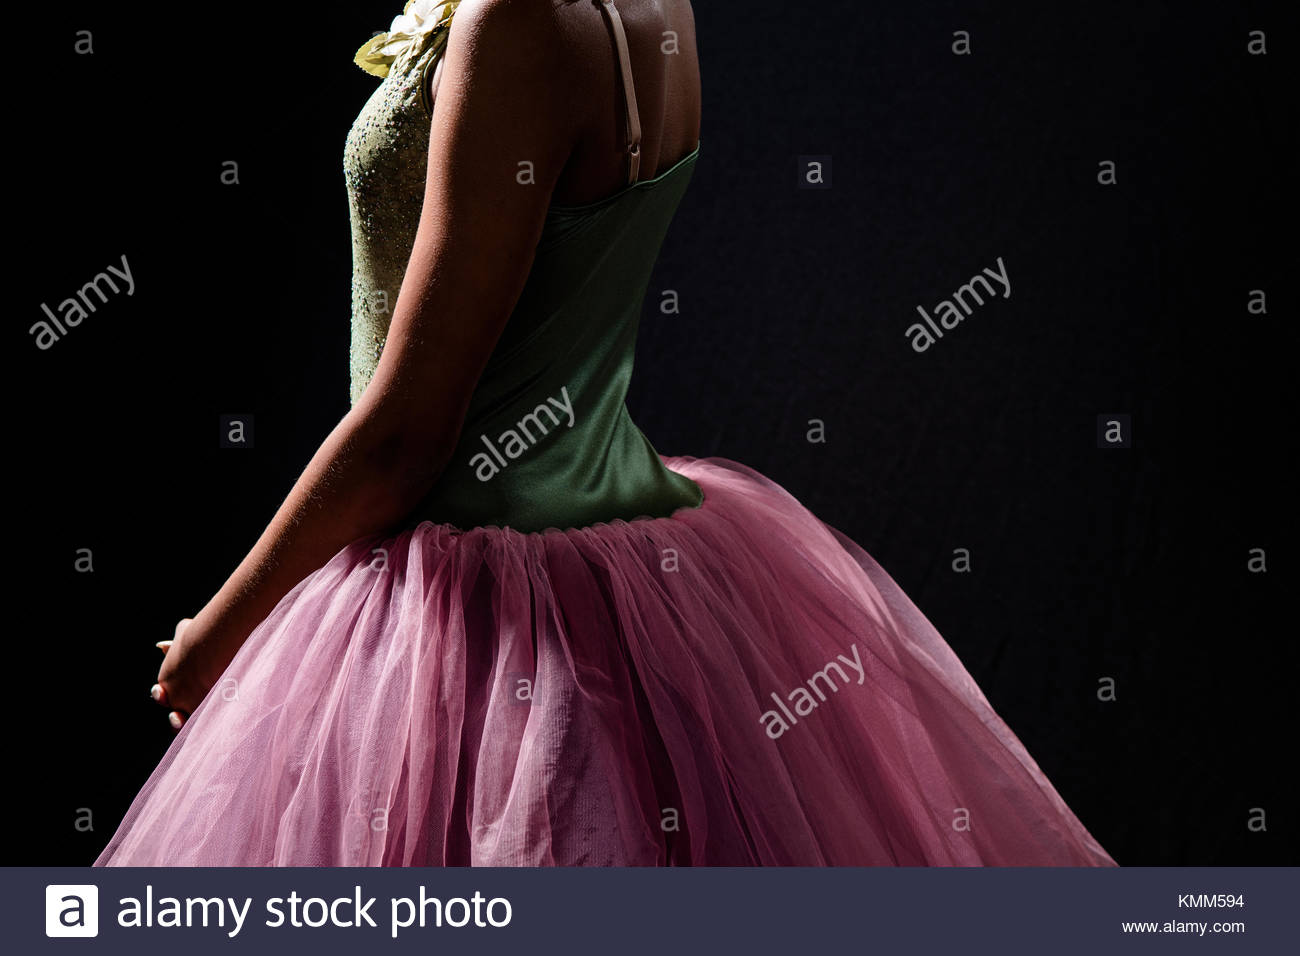 torso of a teen girl in a ballet tutu on a black background - Stock Image